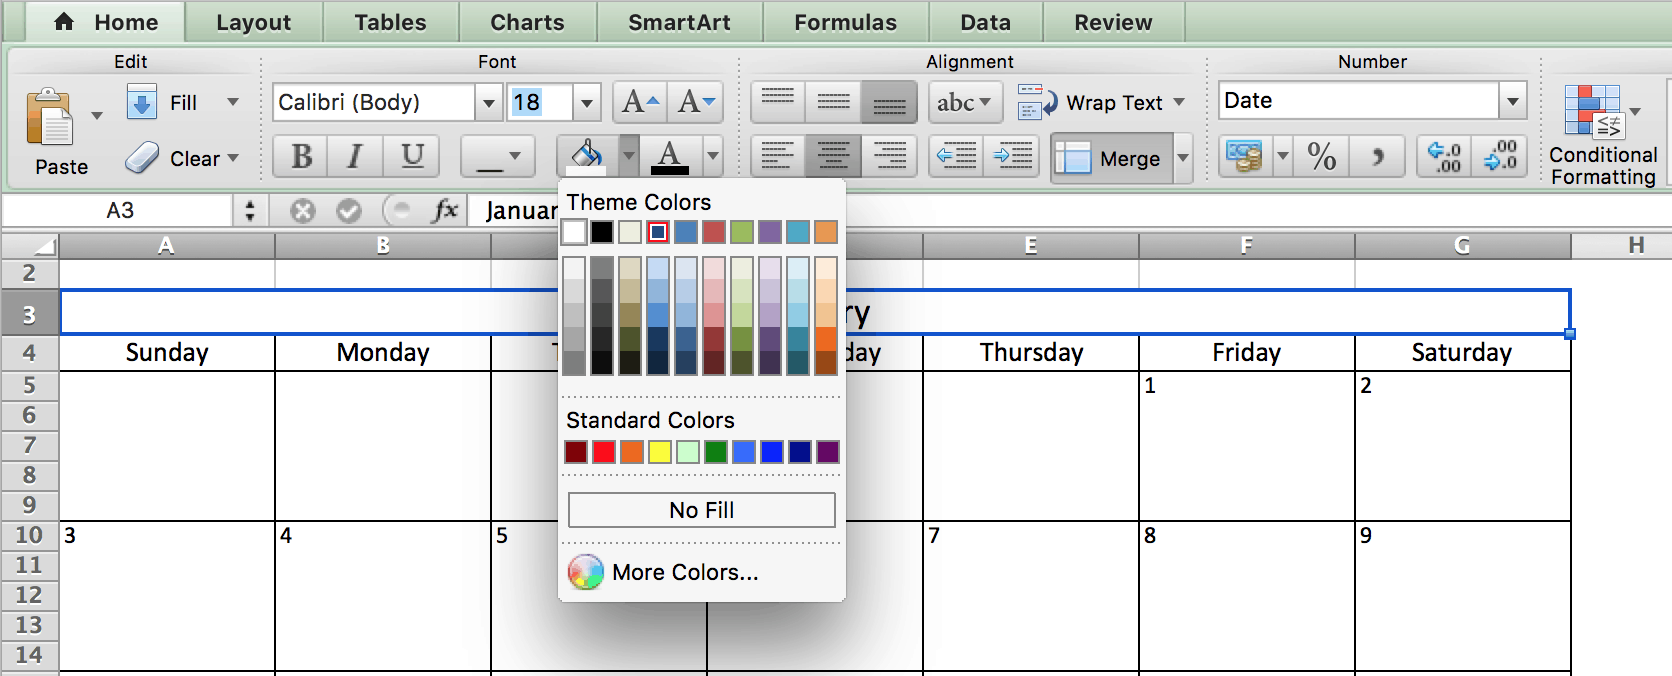 Ediblewildsus  Remarkable Make A  Calendar In Excel Includes Free Template With Goodlooking Choosing Colors  Calendar In Excel With Lovely Microsoft Word Excel Powerpoint Free Download Also Substract Excel In Addition What Does Round Mean In Excel And Make Graphs In Excel As Well As Unhide Toolbar In Excel Additionally Scoreboard Excel From Smartsheetcom With Ediblewildsus  Goodlooking Make A  Calendar In Excel Includes Free Template With Lovely Choosing Colors  Calendar In Excel And Remarkable Microsoft Word Excel Powerpoint Free Download Also Substract Excel In Addition What Does Round Mean In Excel From Smartsheetcom